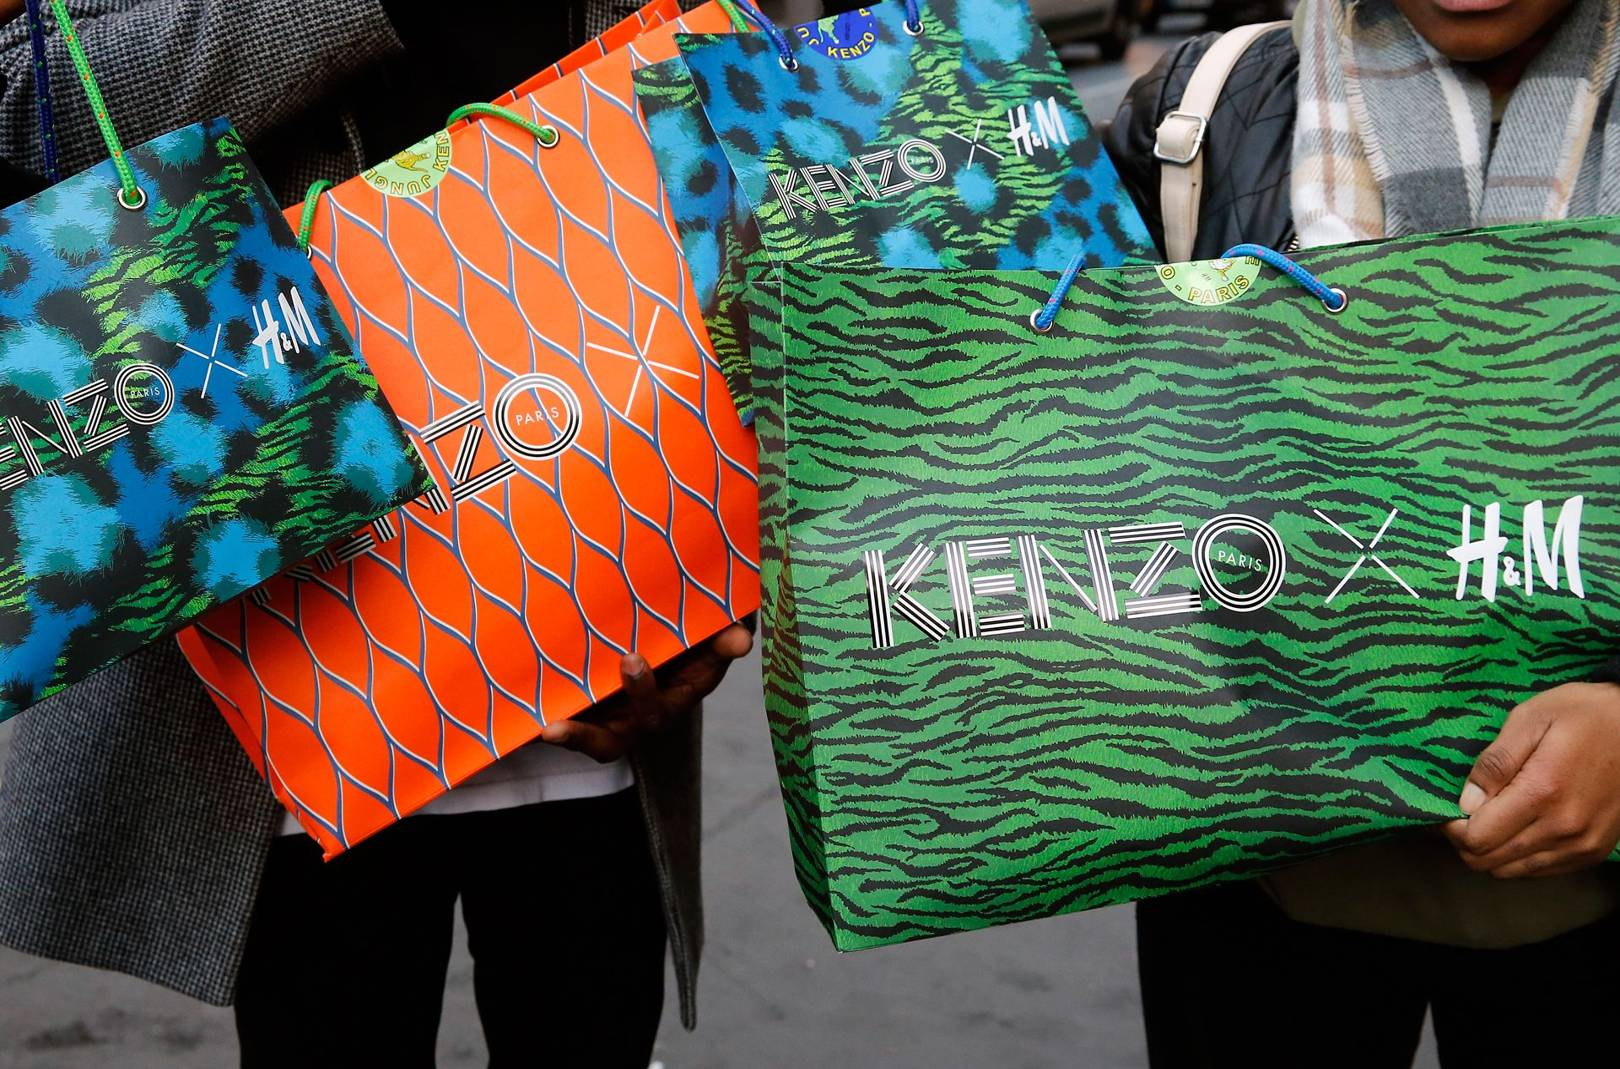 cddbce1ff7 Kenzo x H&M: how to get your hands on the collab if you missed out